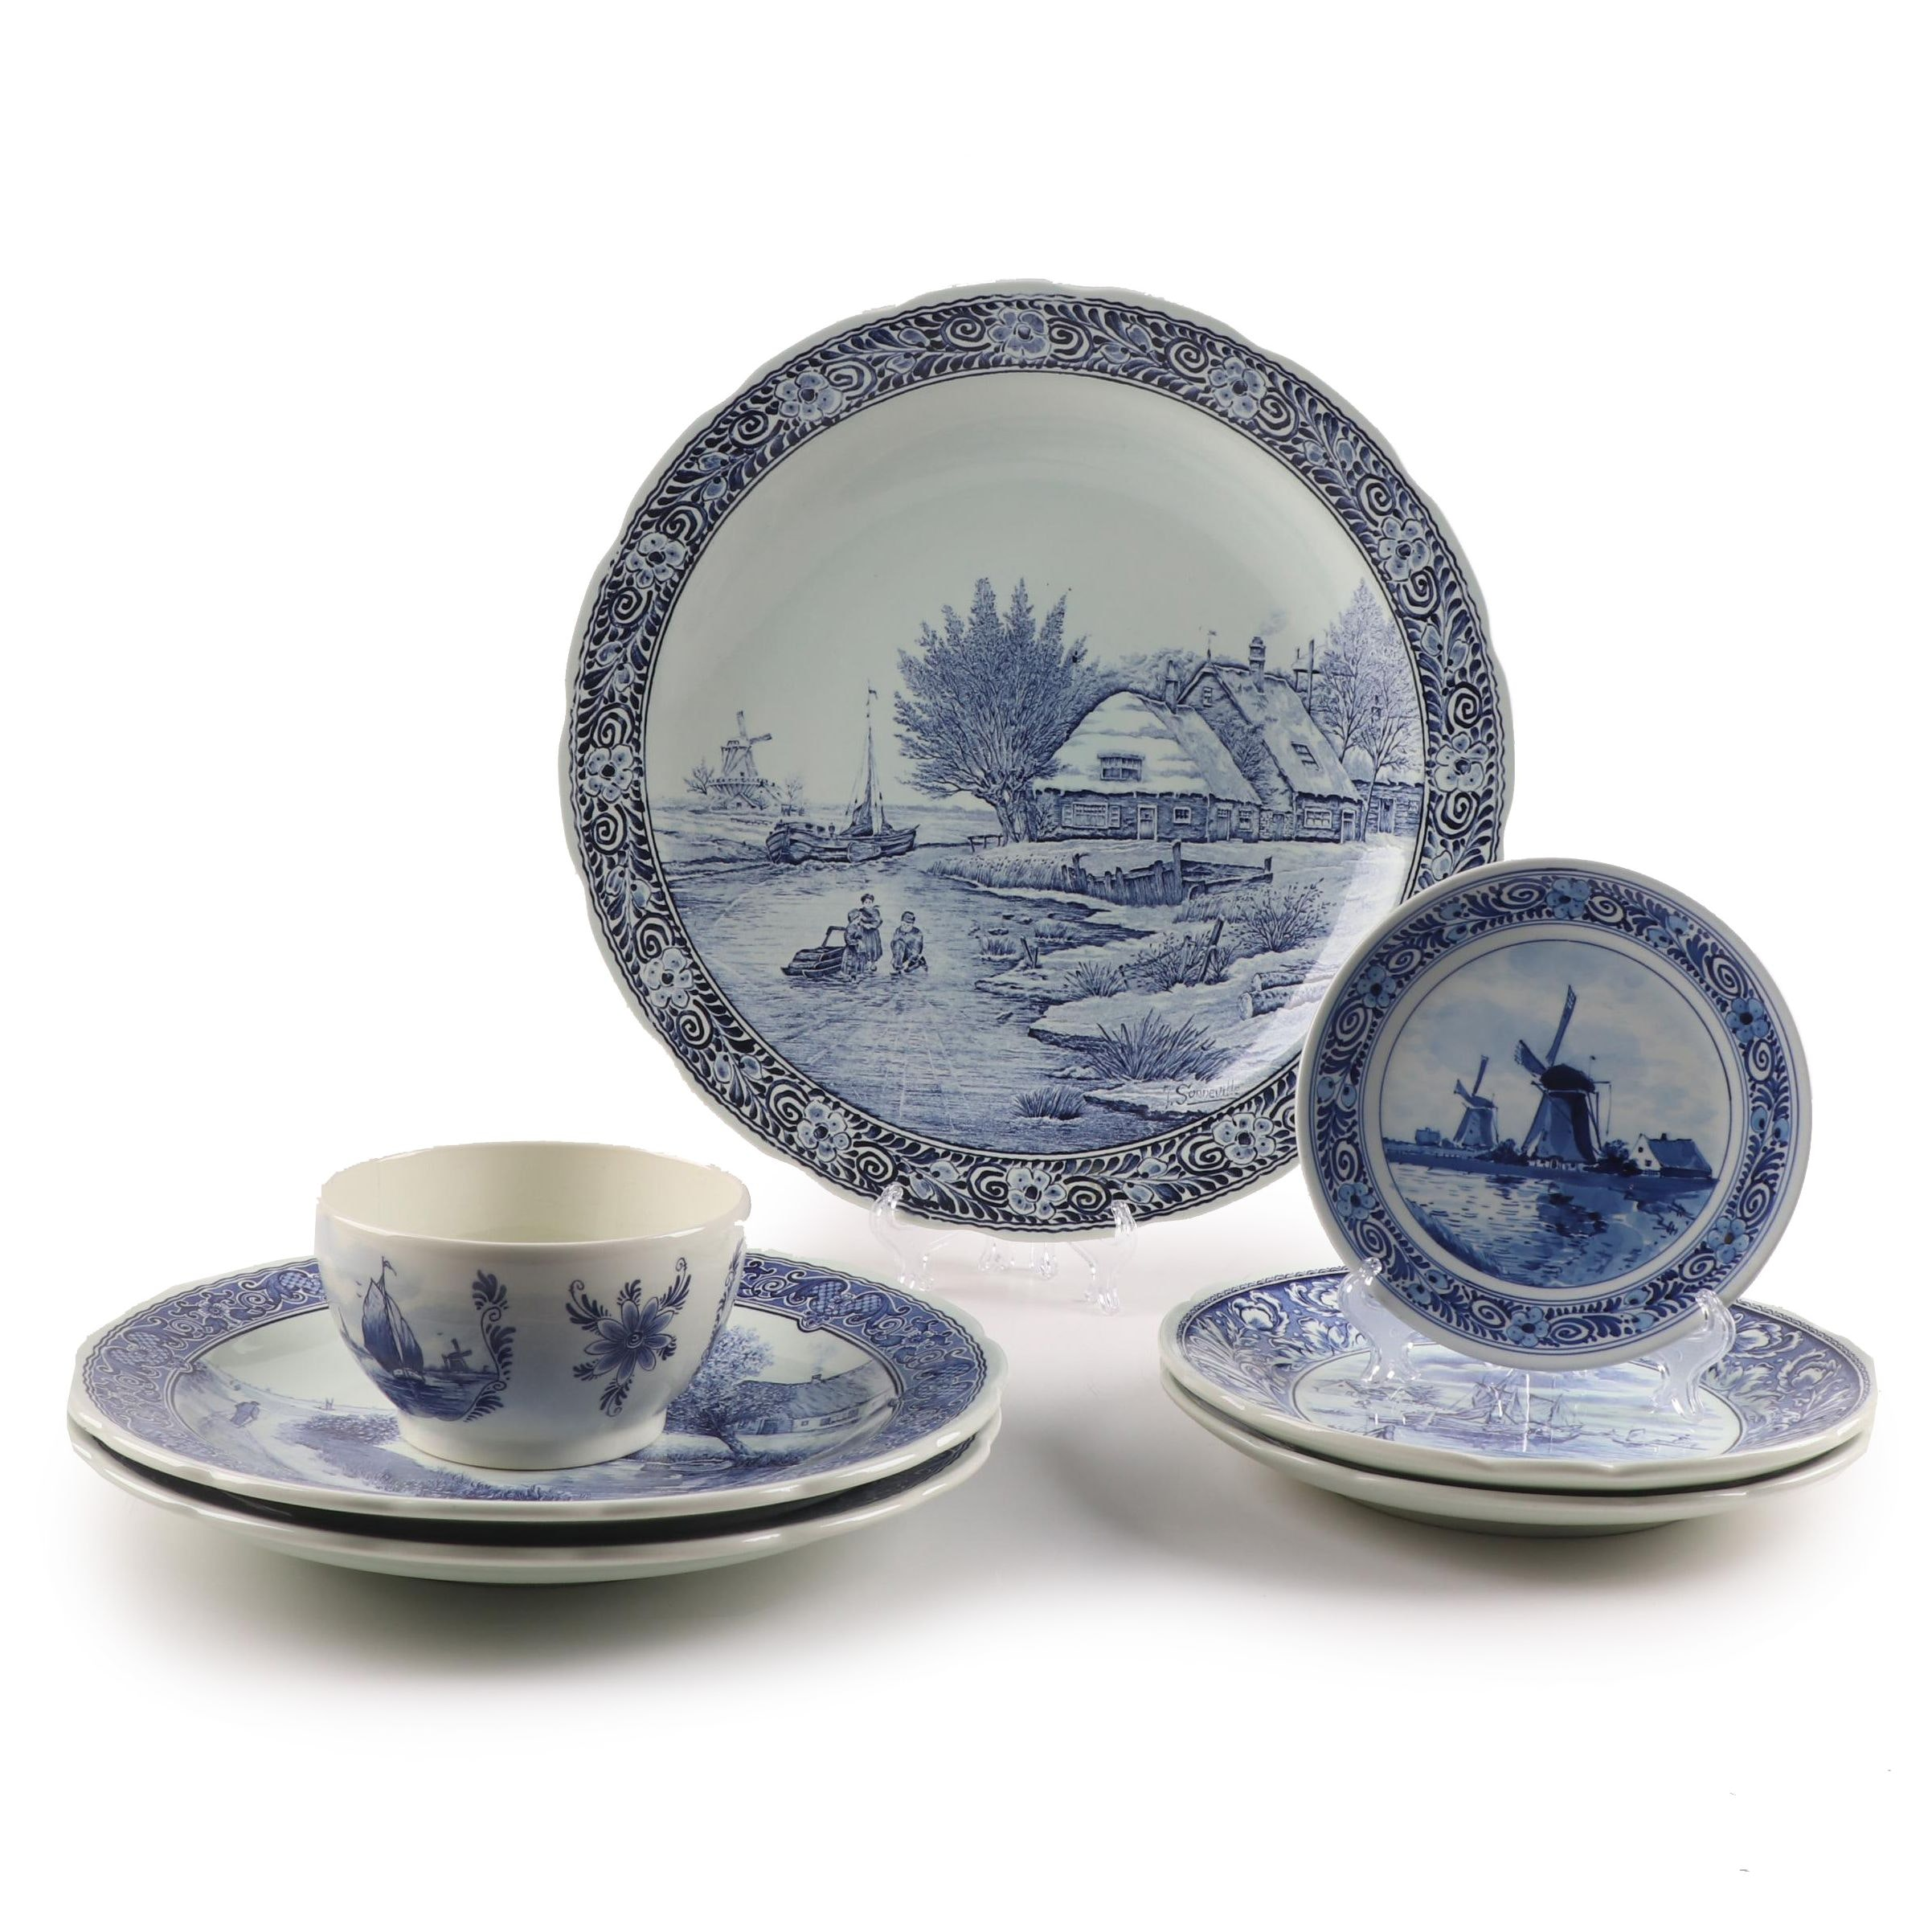 Delft Serveware and Dinnerware featuring Royal Delft and Boch